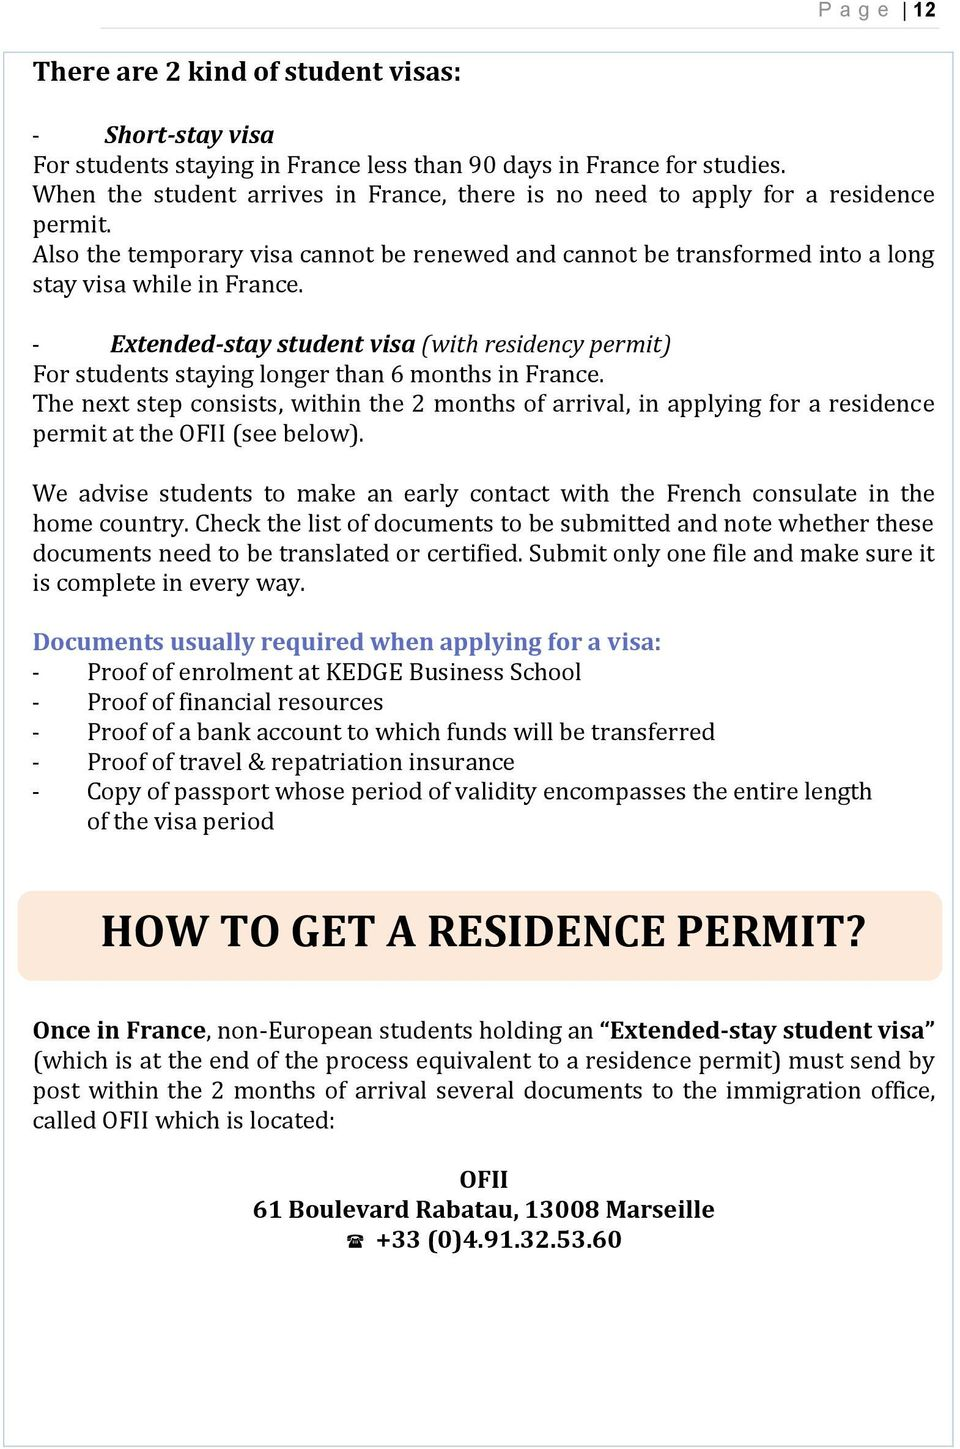 - Extended-stay student visa (with residency permit) For students staying longer than 6 months in France.